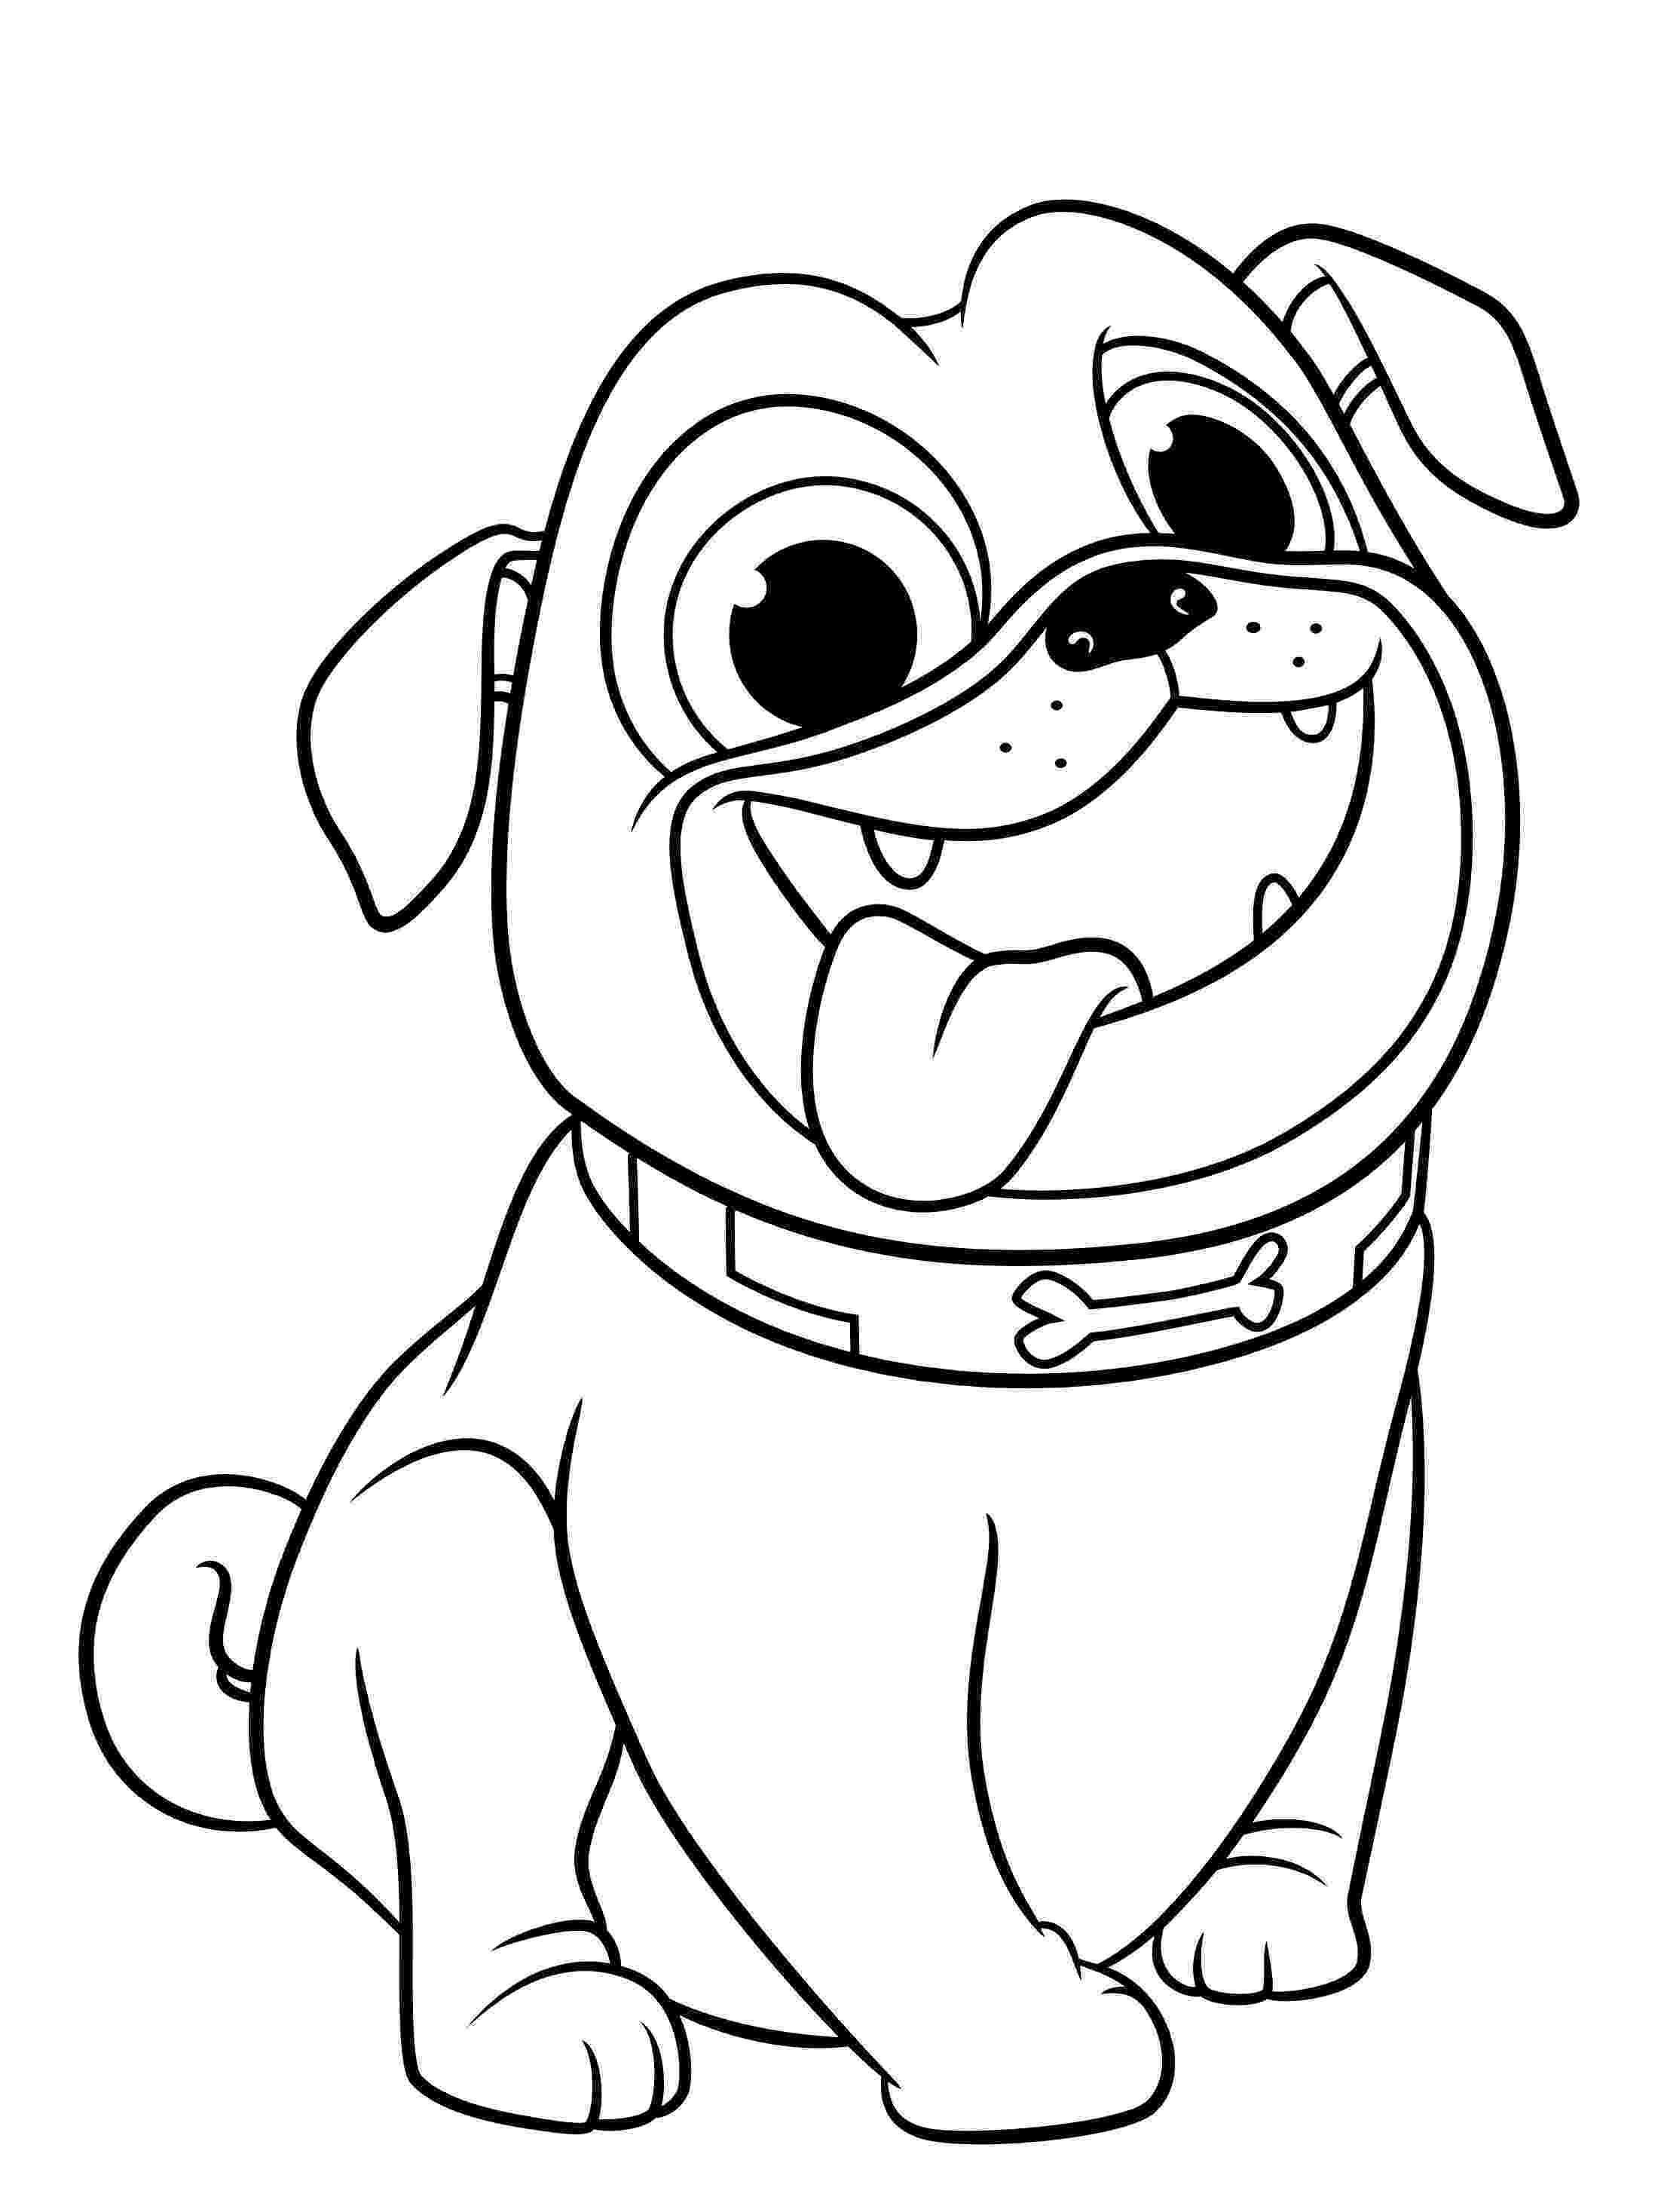 puppy coloring page puppy dog pals coloring pages to download and print for free coloring puppy page